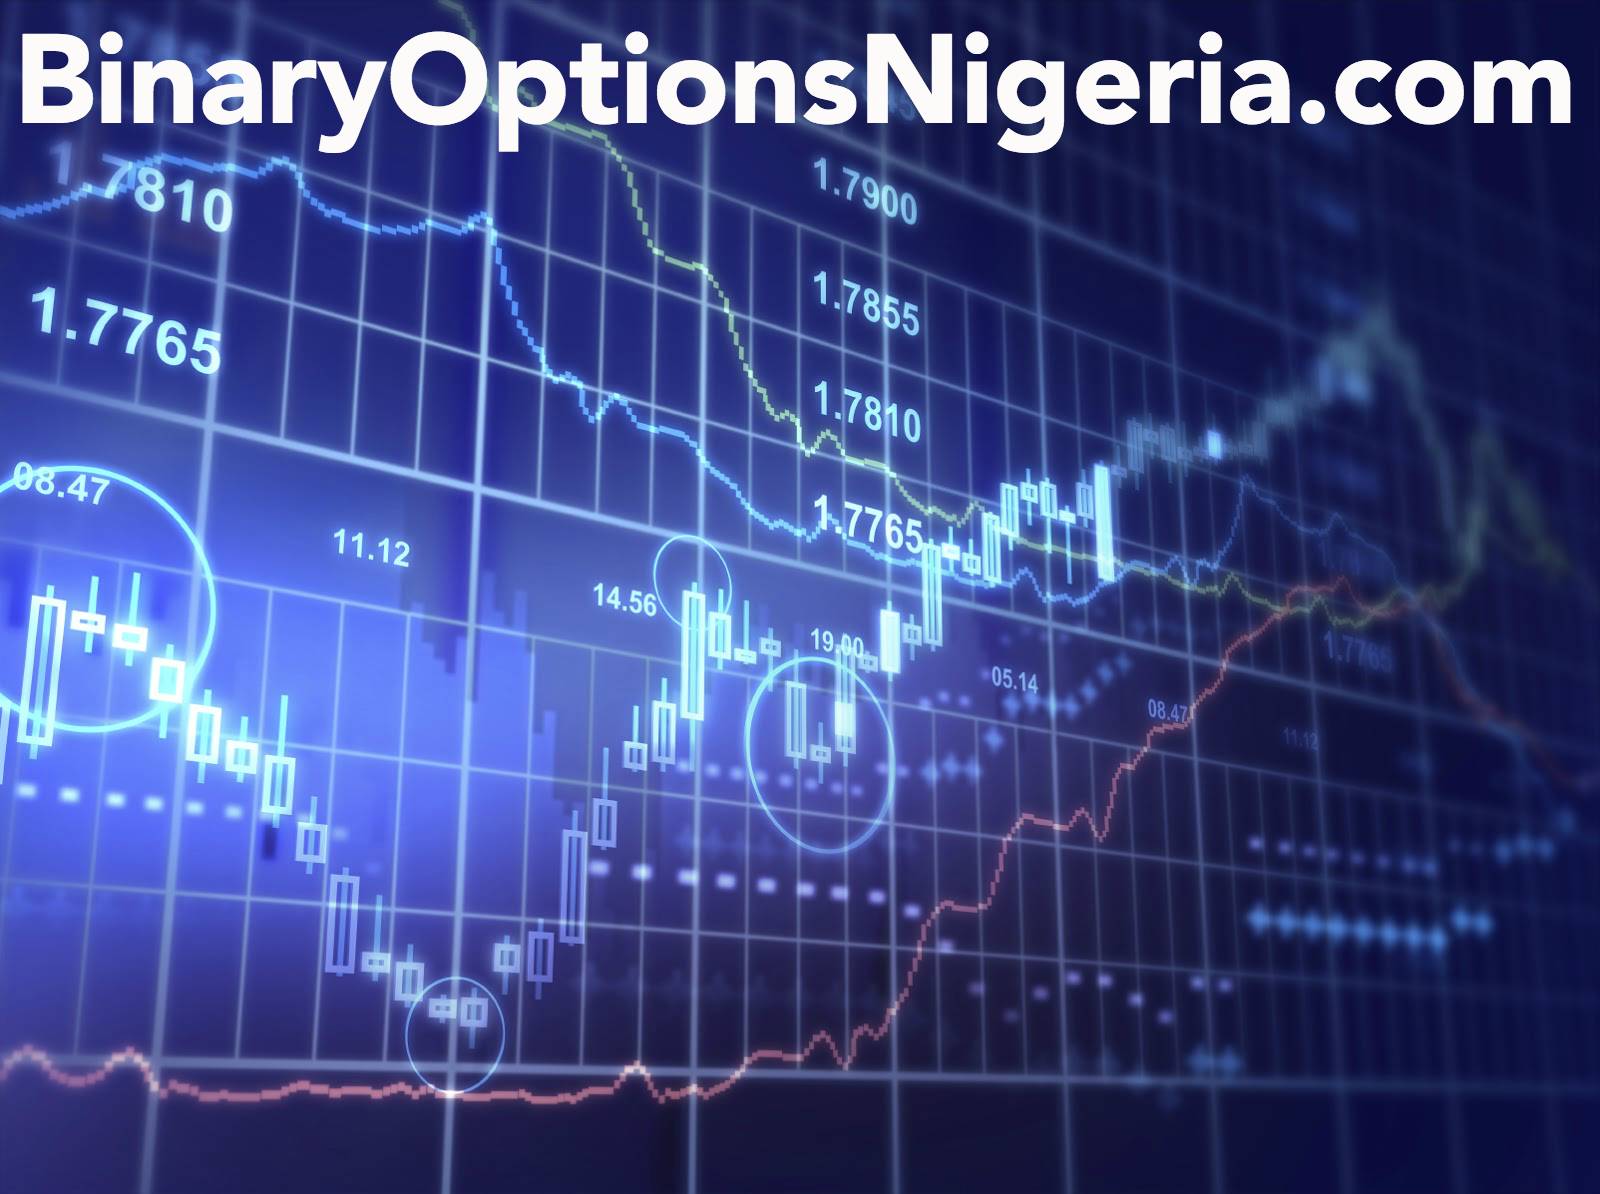 Binary options traders in nigeria